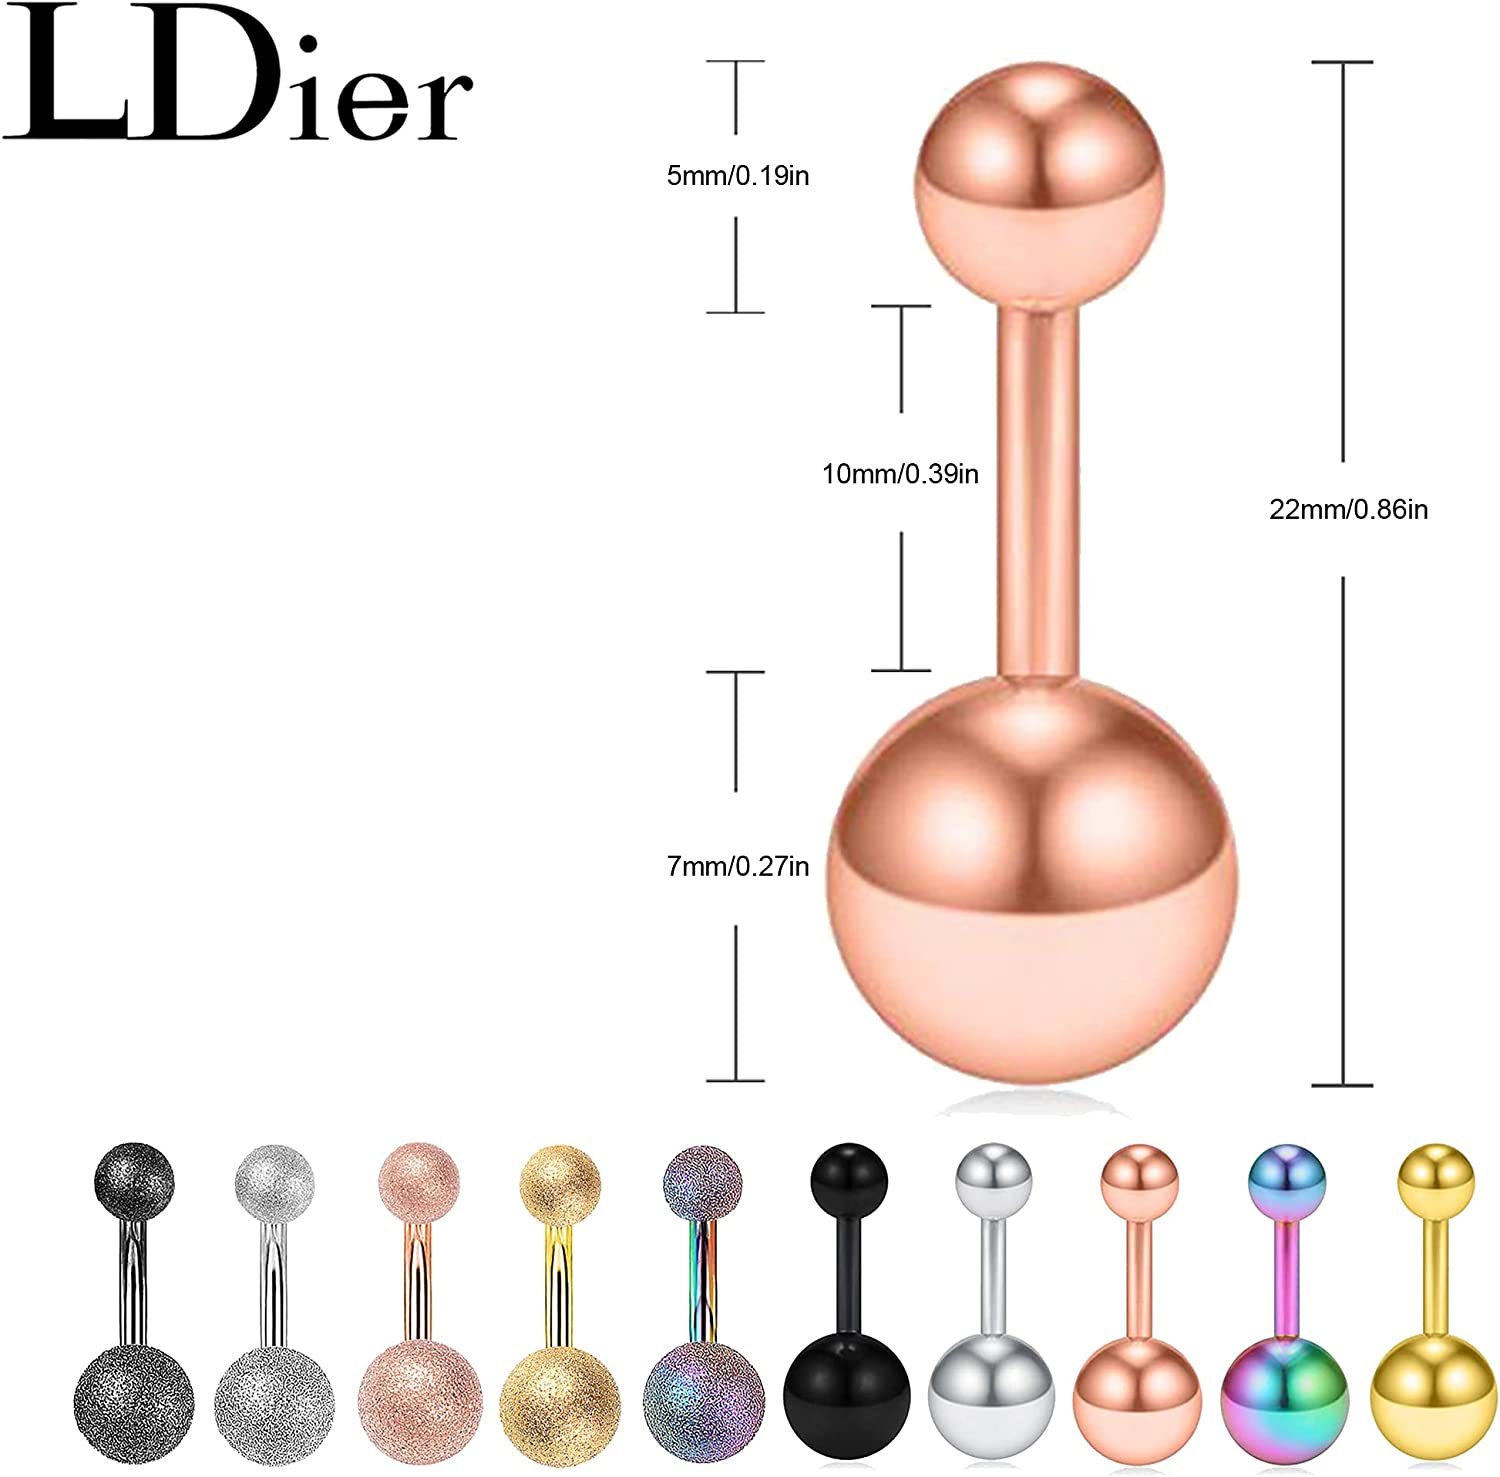 LDier Belly Button Rings - 10Pcs Stainless Steel Matte Navel Barbell Stud Rings - 14G Navel Piercing Jewelry for Women